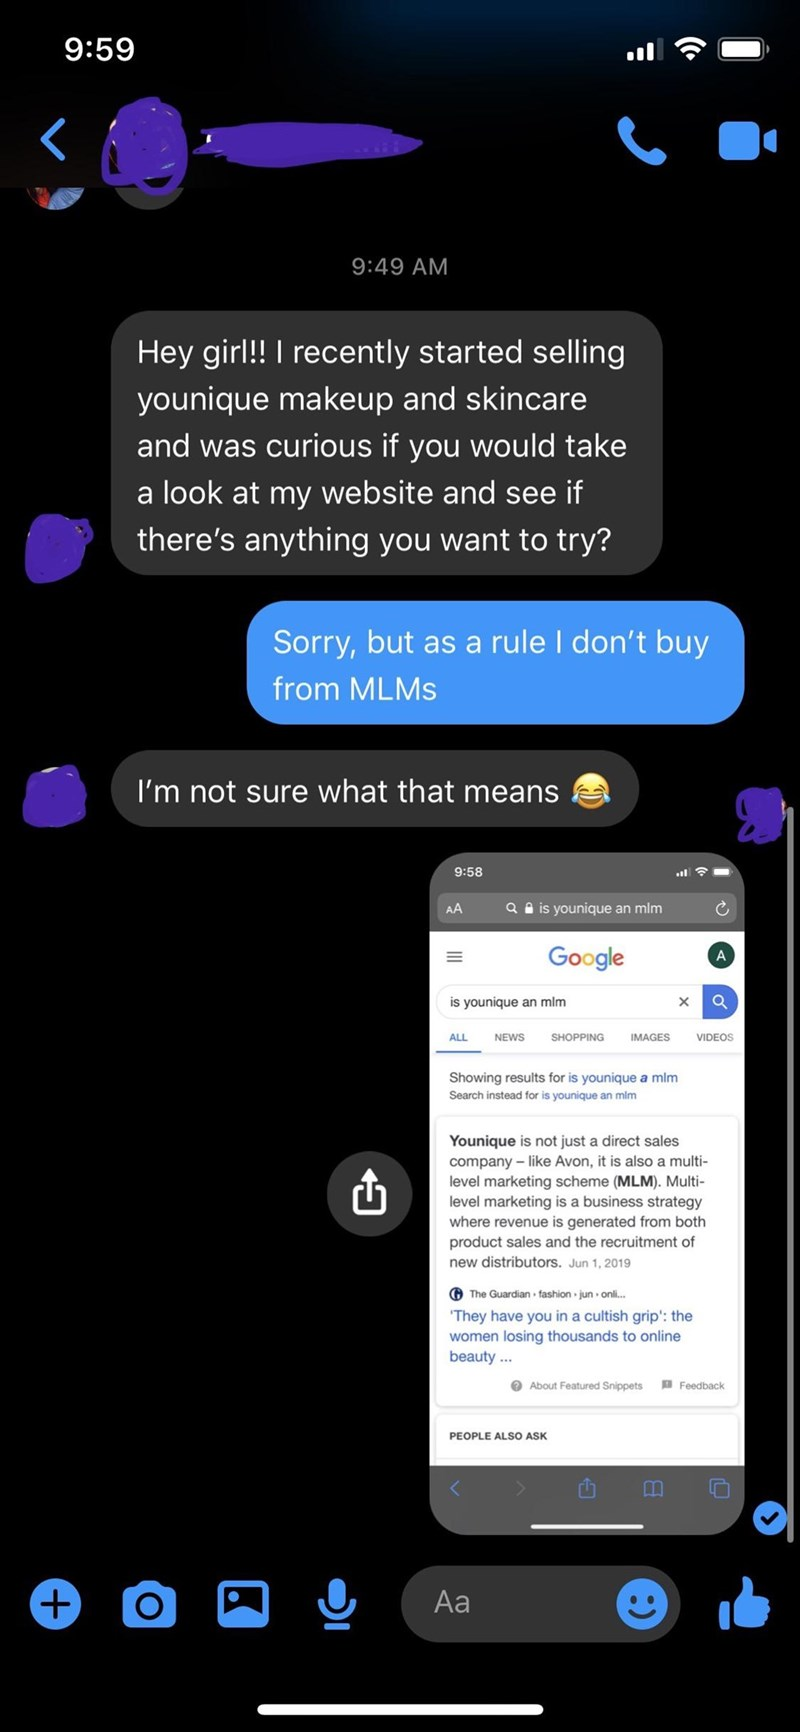 Text - 9:59 9:49 AM Hey girl! I recently started selling younique makeup and skincare and was curious if you would take a look at my website and see if there's anything you want to try? Sorry, but as a rule I don't buy from MLMS I'm not sure what that means 9:58 AA Q A is younique an mim Google A is younique an mlm ALL NEWS SHOPPING IMAGES VIDEOS Showing results for is younique a mlm Search instead for is younique an mim Younique is not just a direct sales company - like Avon, it is also a multi